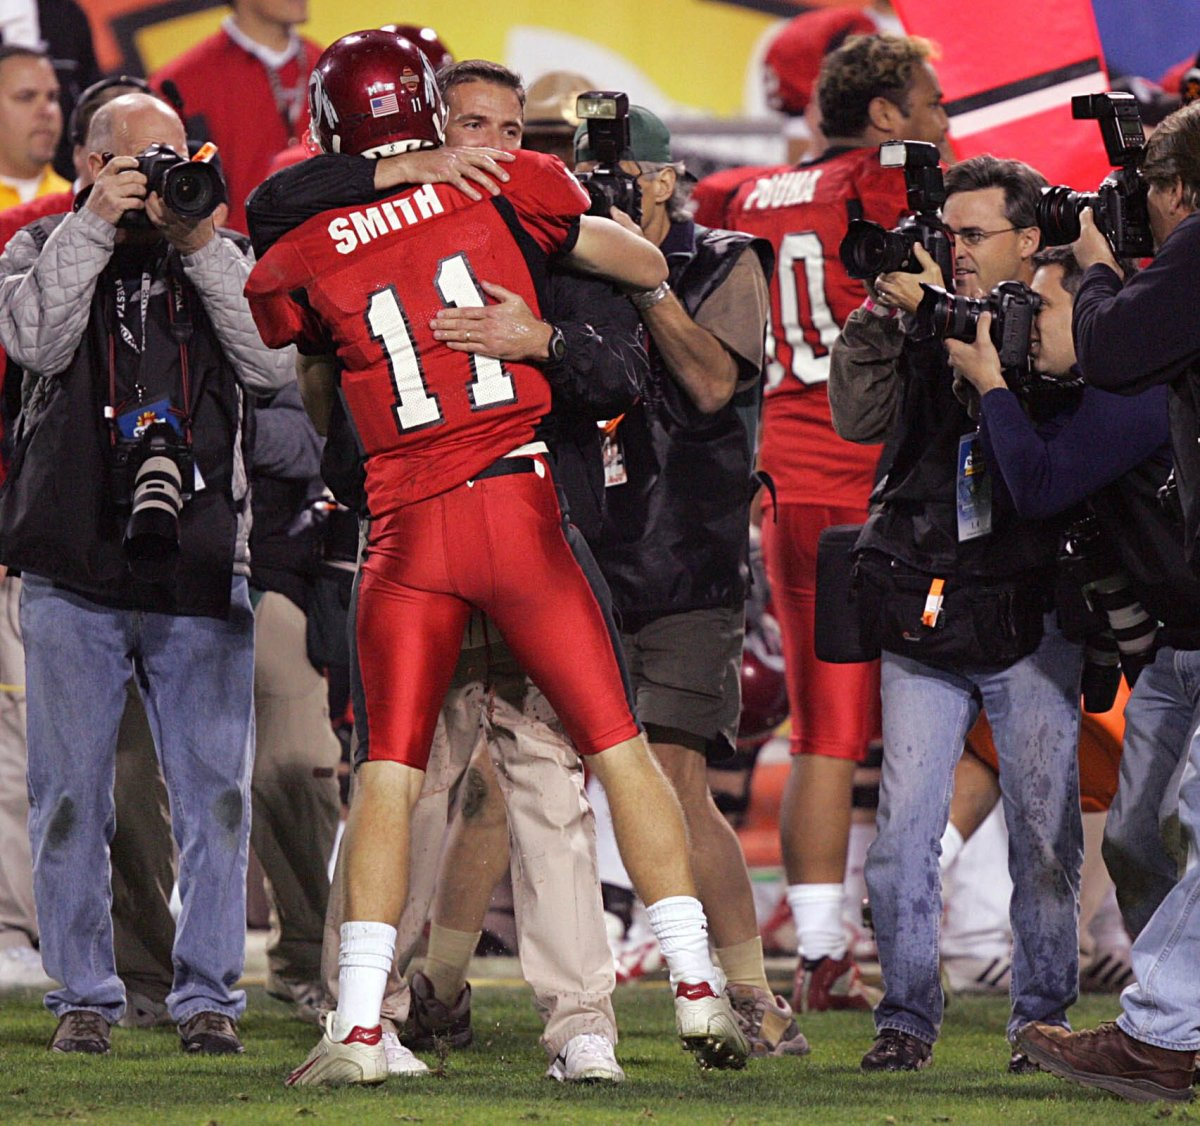 Alex Smith hugs his college Urban Meyer following a victory during the 2004 college football season